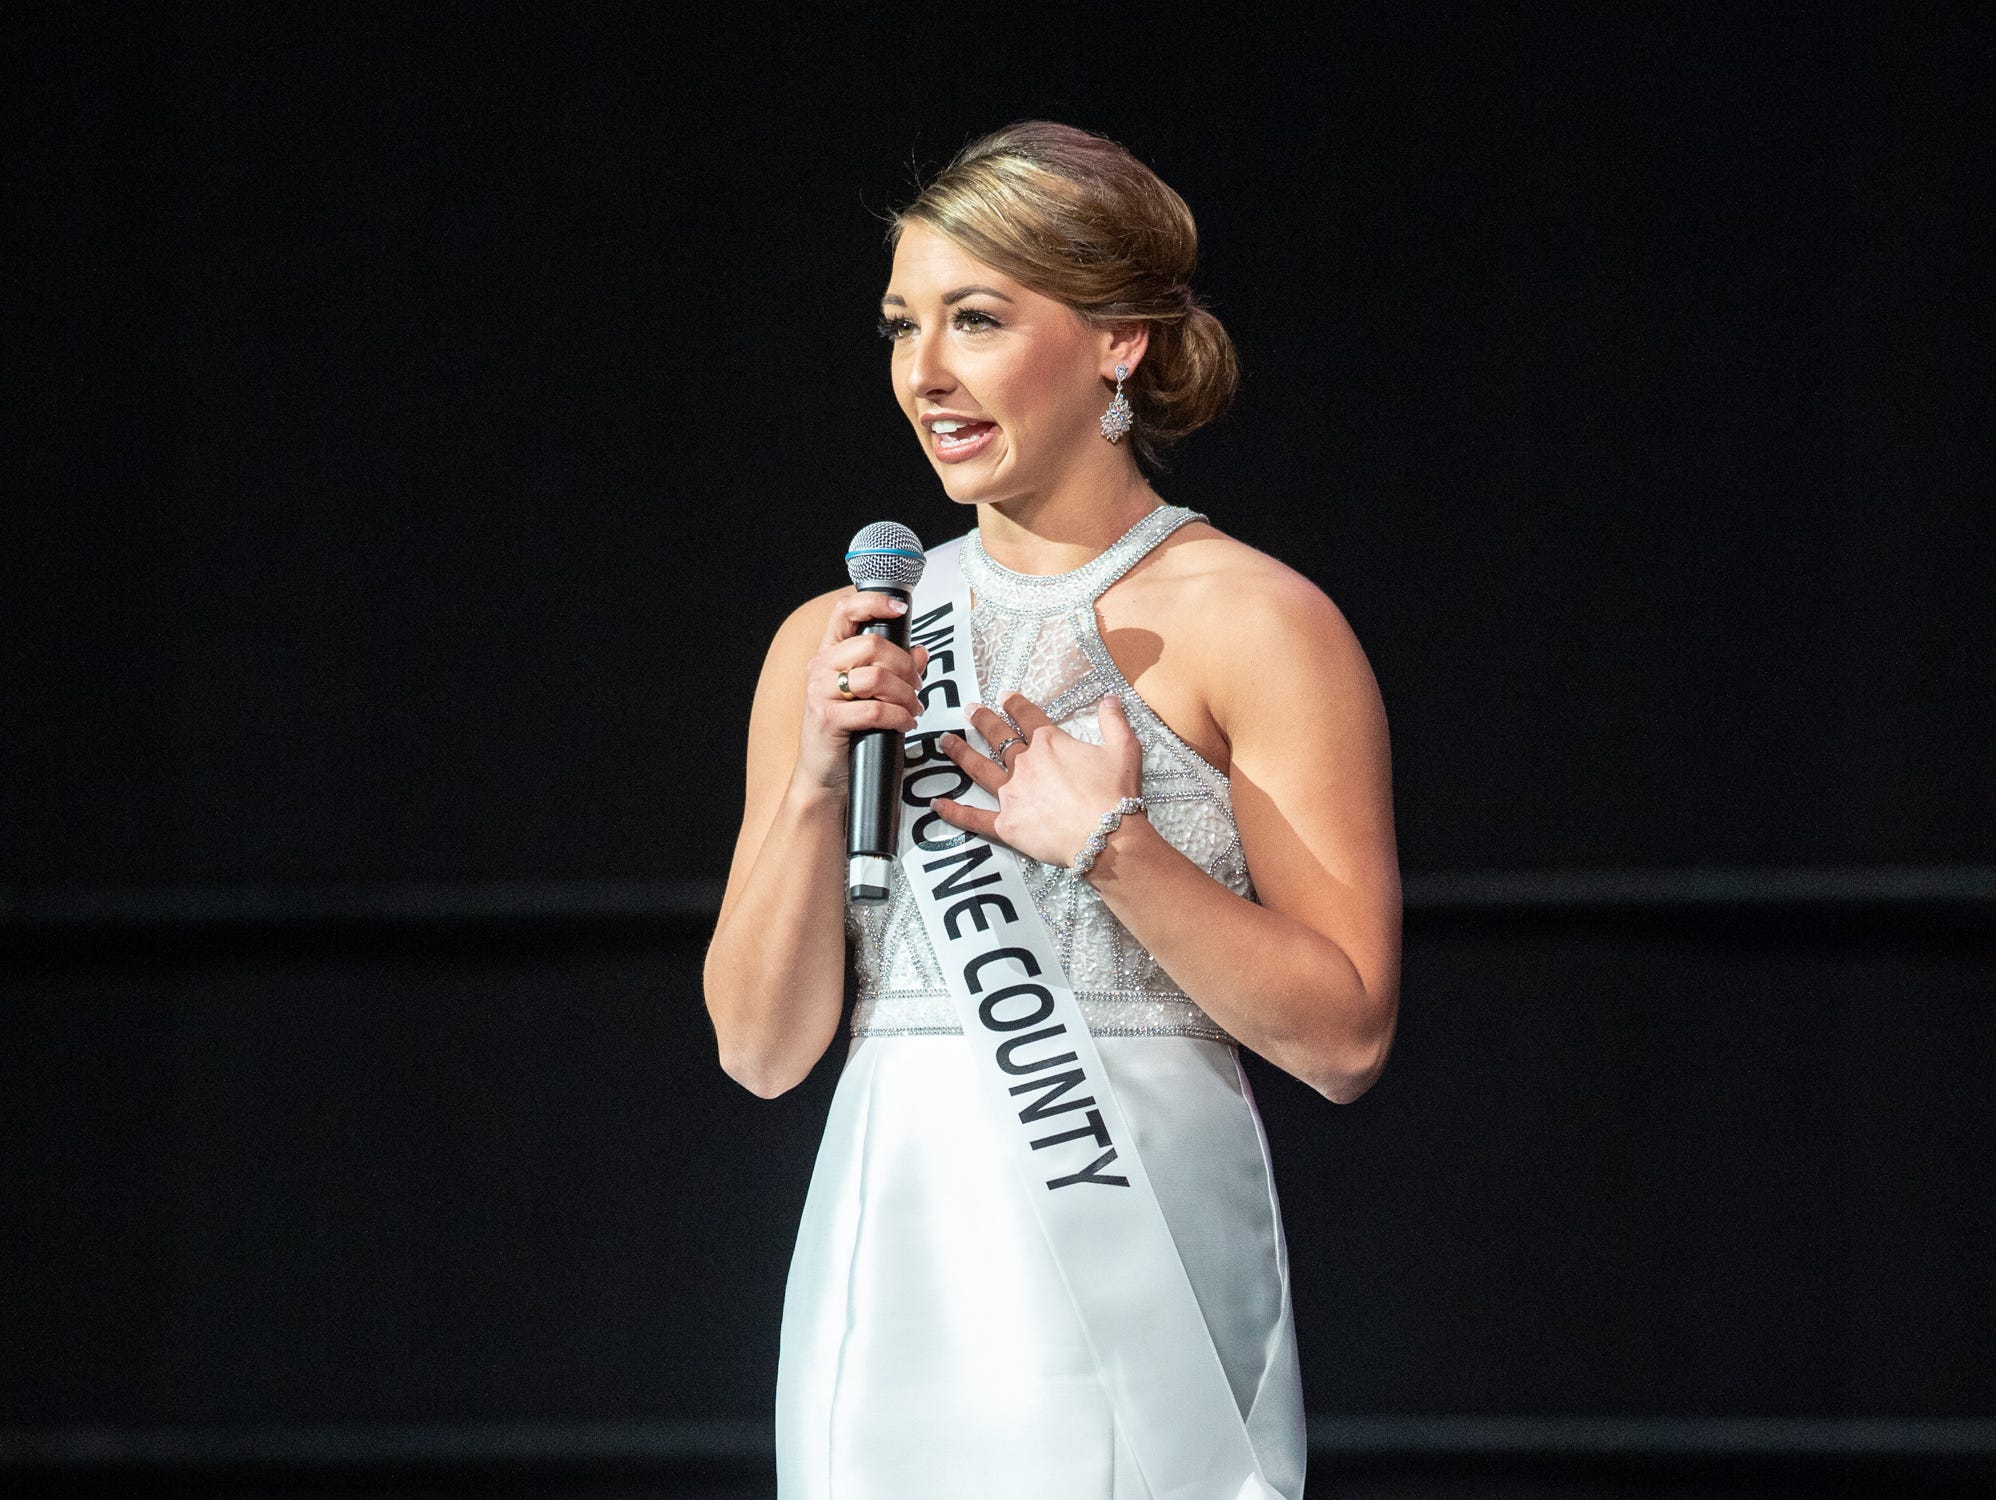 """Miss Boone County, Maci French, was given the word """"tradition"""" to use in a spontaneous response during the 61st Indiana State Fair Queen Pageant at the Indiana State Fairgrounds in Indianapolis on Sunday, Jan. 6, 2019."""